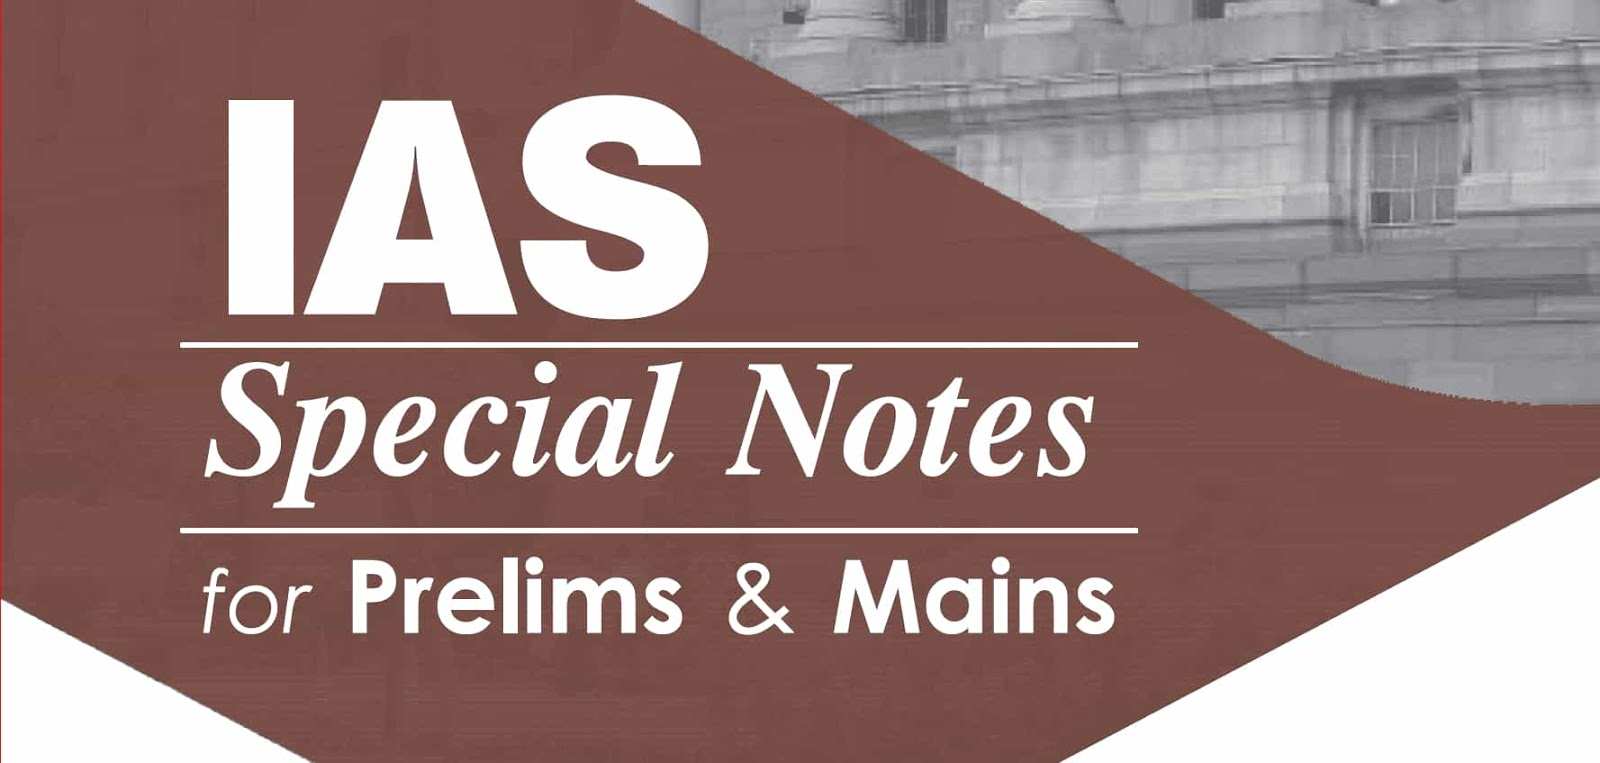 Act and Polices IAS Special Notes 2020